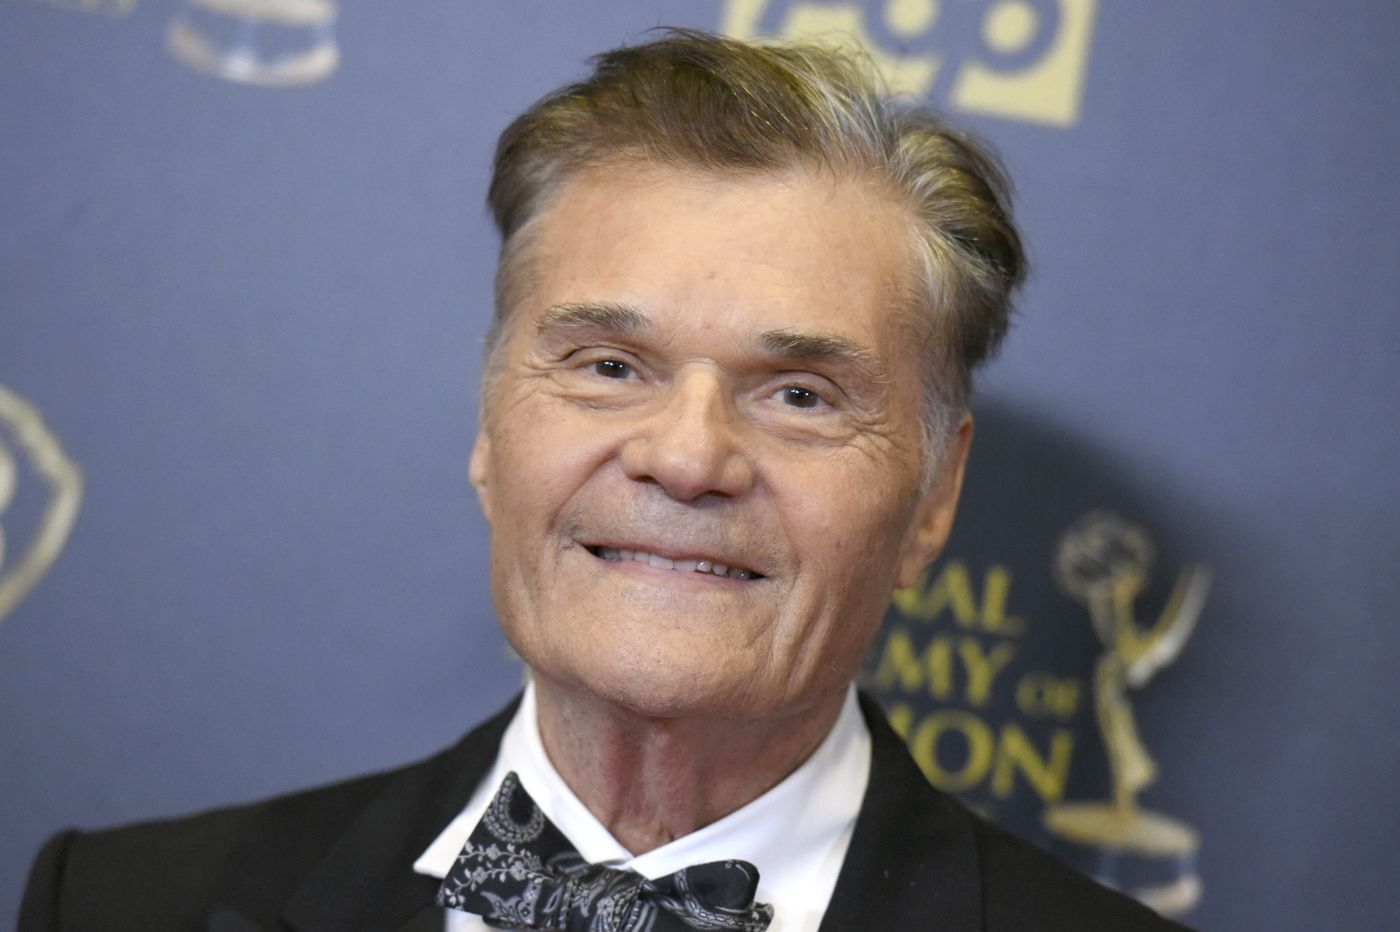 Fred Willard, comedic improv-style actor of 'Best In Show' and 'Anchorman', has died at 86